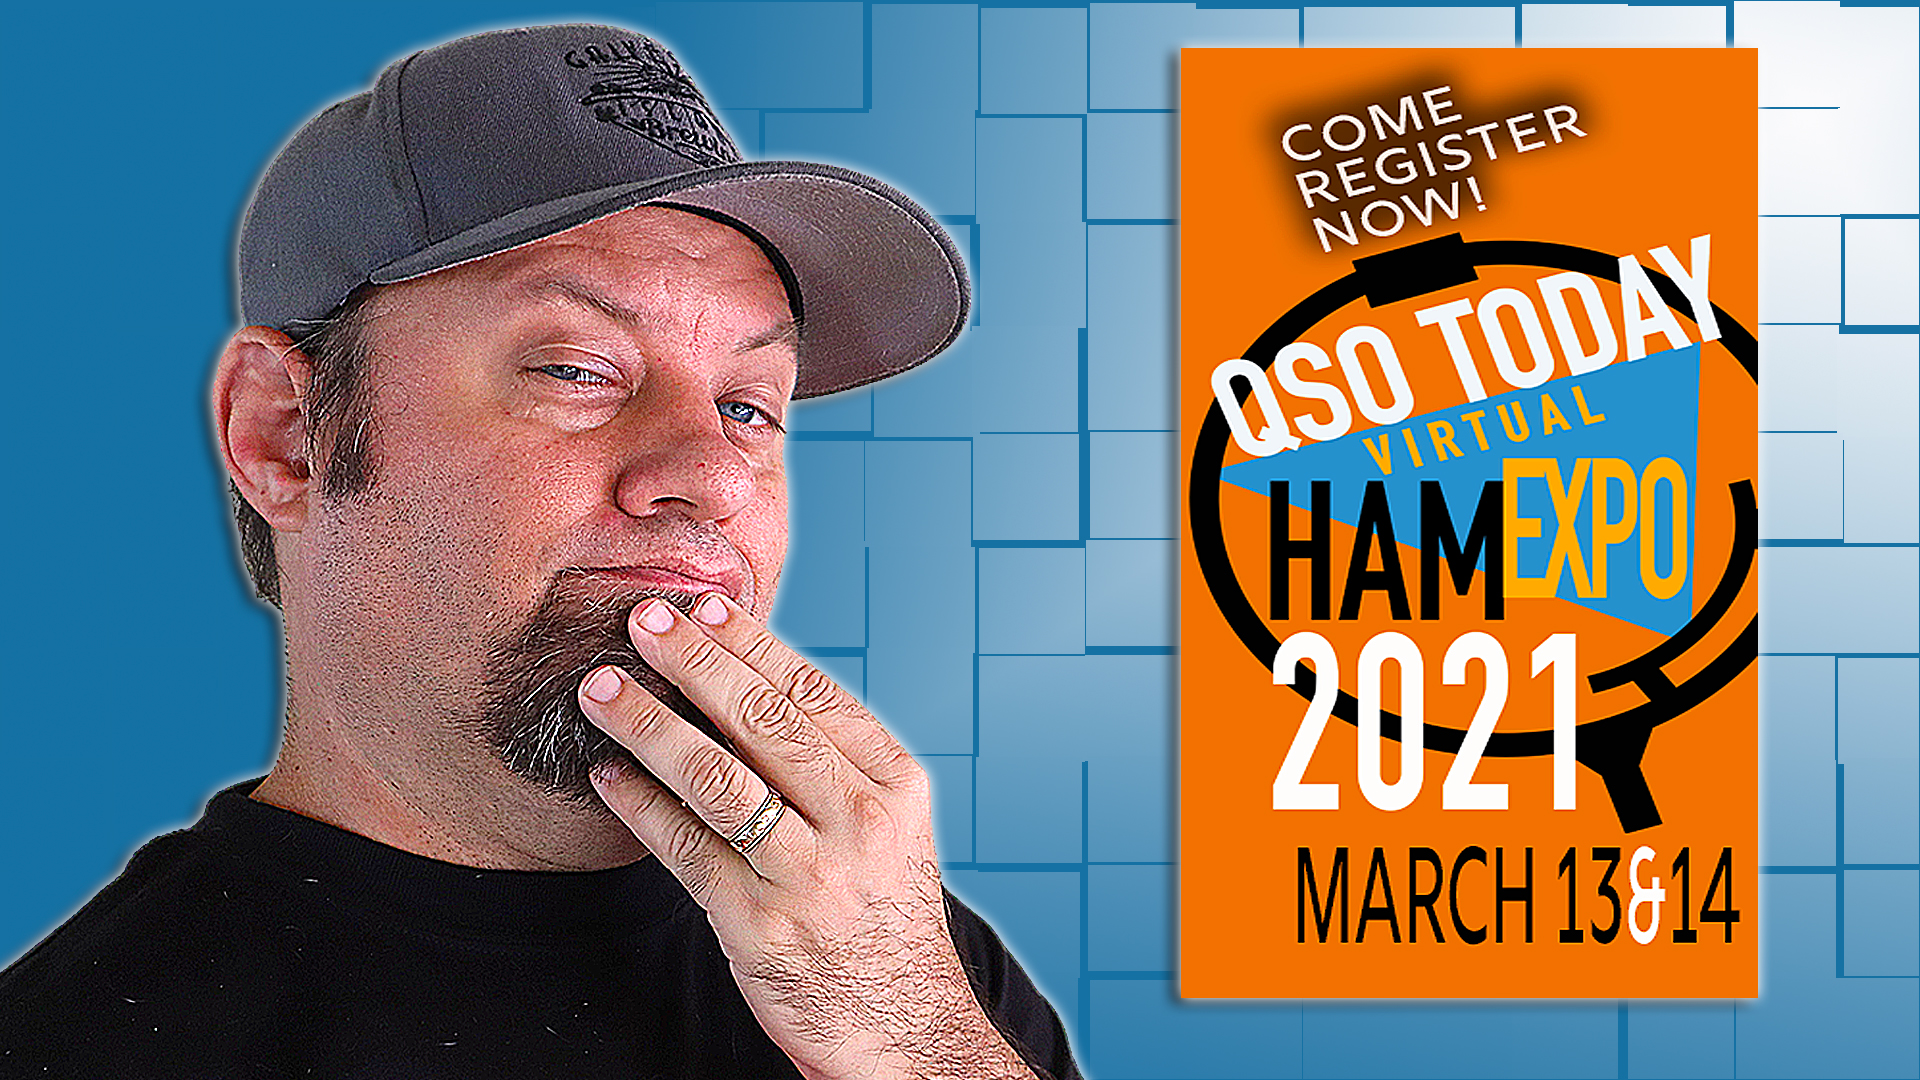 Episode 545: QSO Today Virtual Ham Expo for 2021!  Online Hamfest 2021